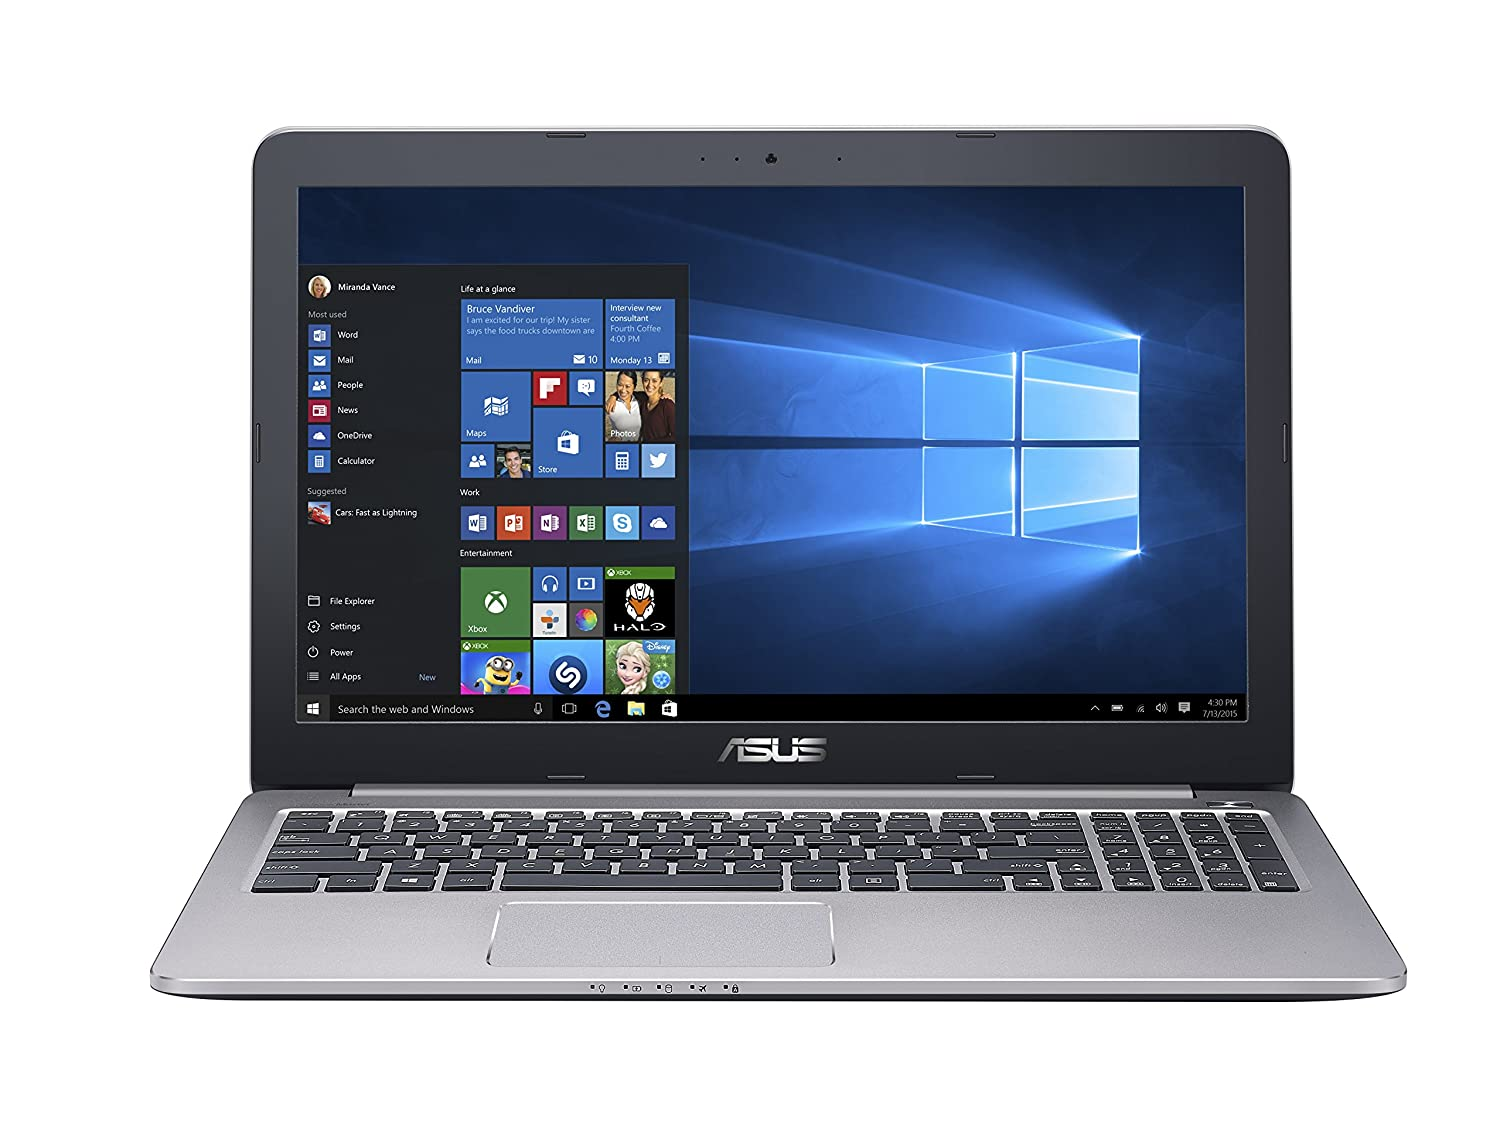 Top 10 Best 4K Ultra HD Laptops Reviews 2016-2017 - cover